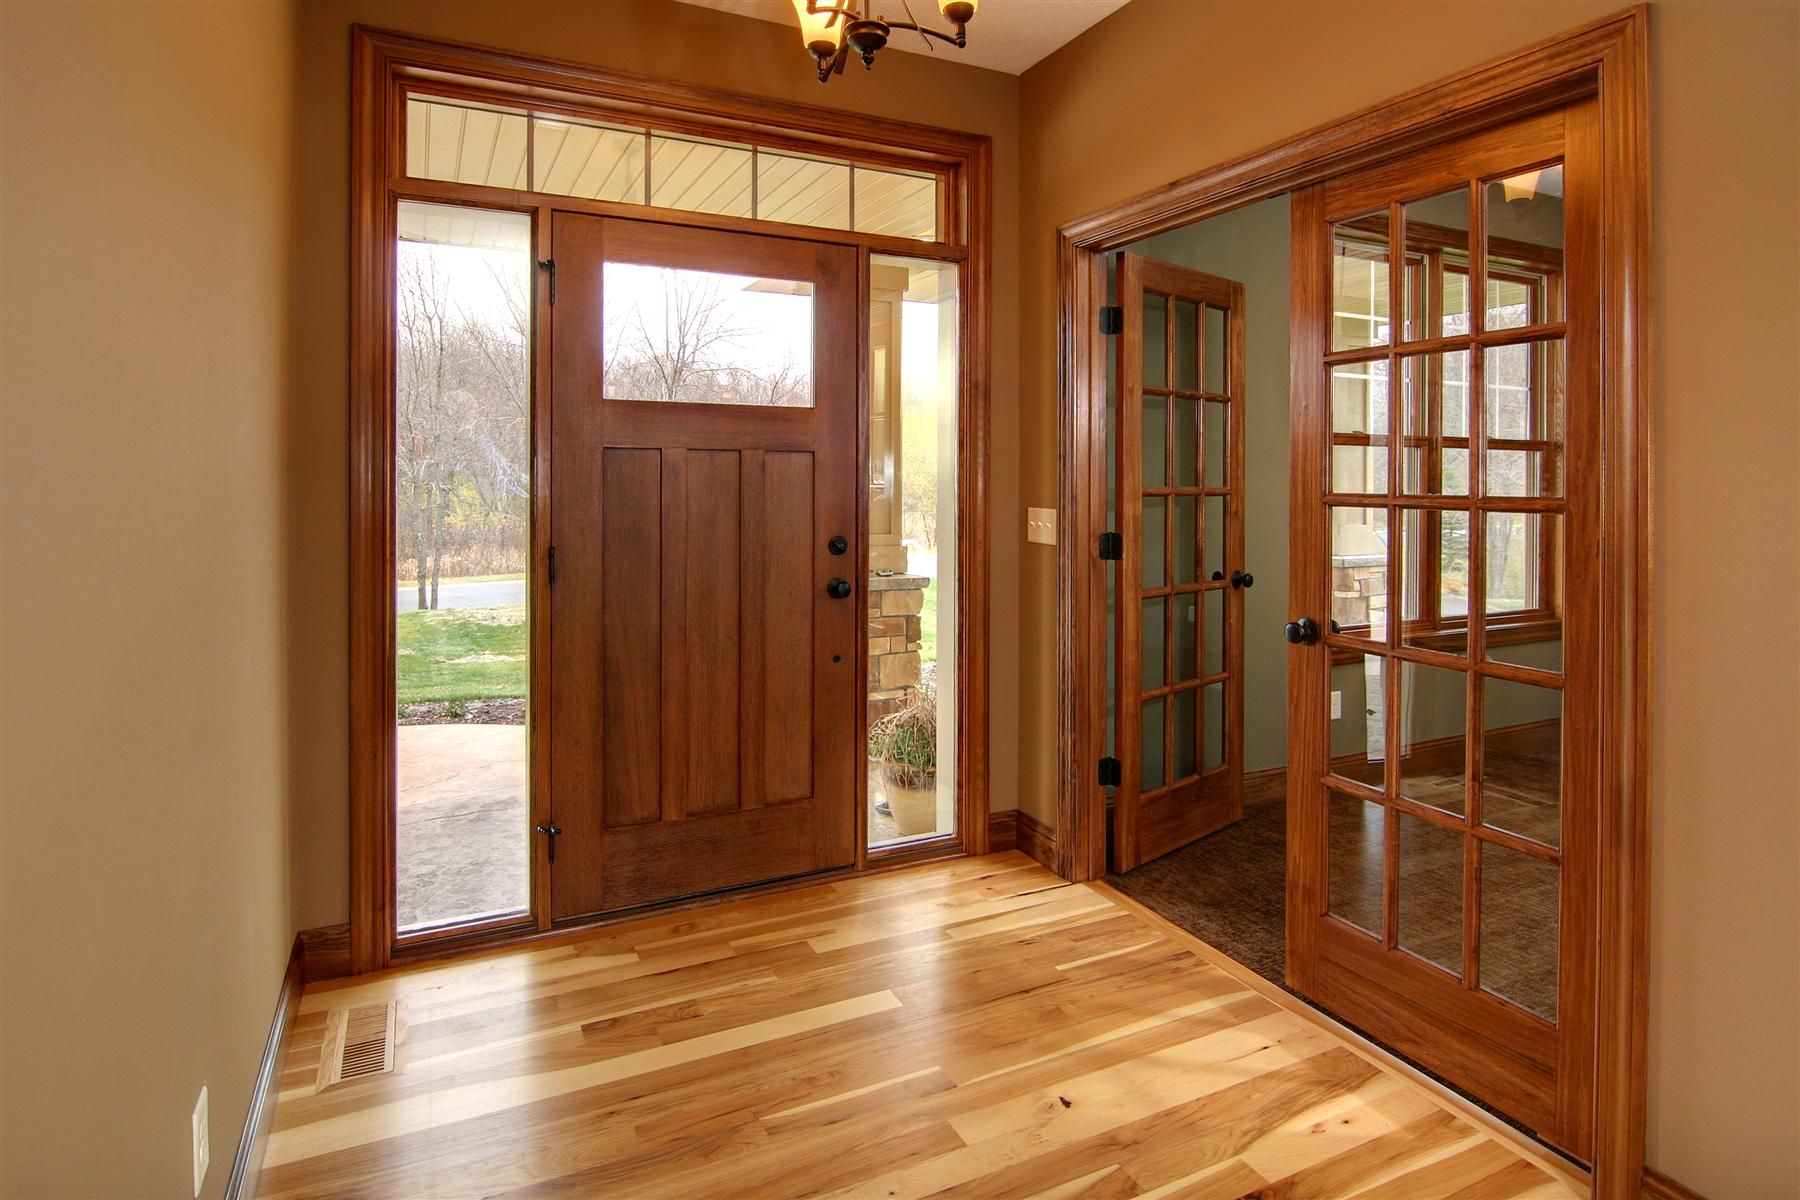 Hickory Floor Cherry Stained Doors And Trim Home Sweet